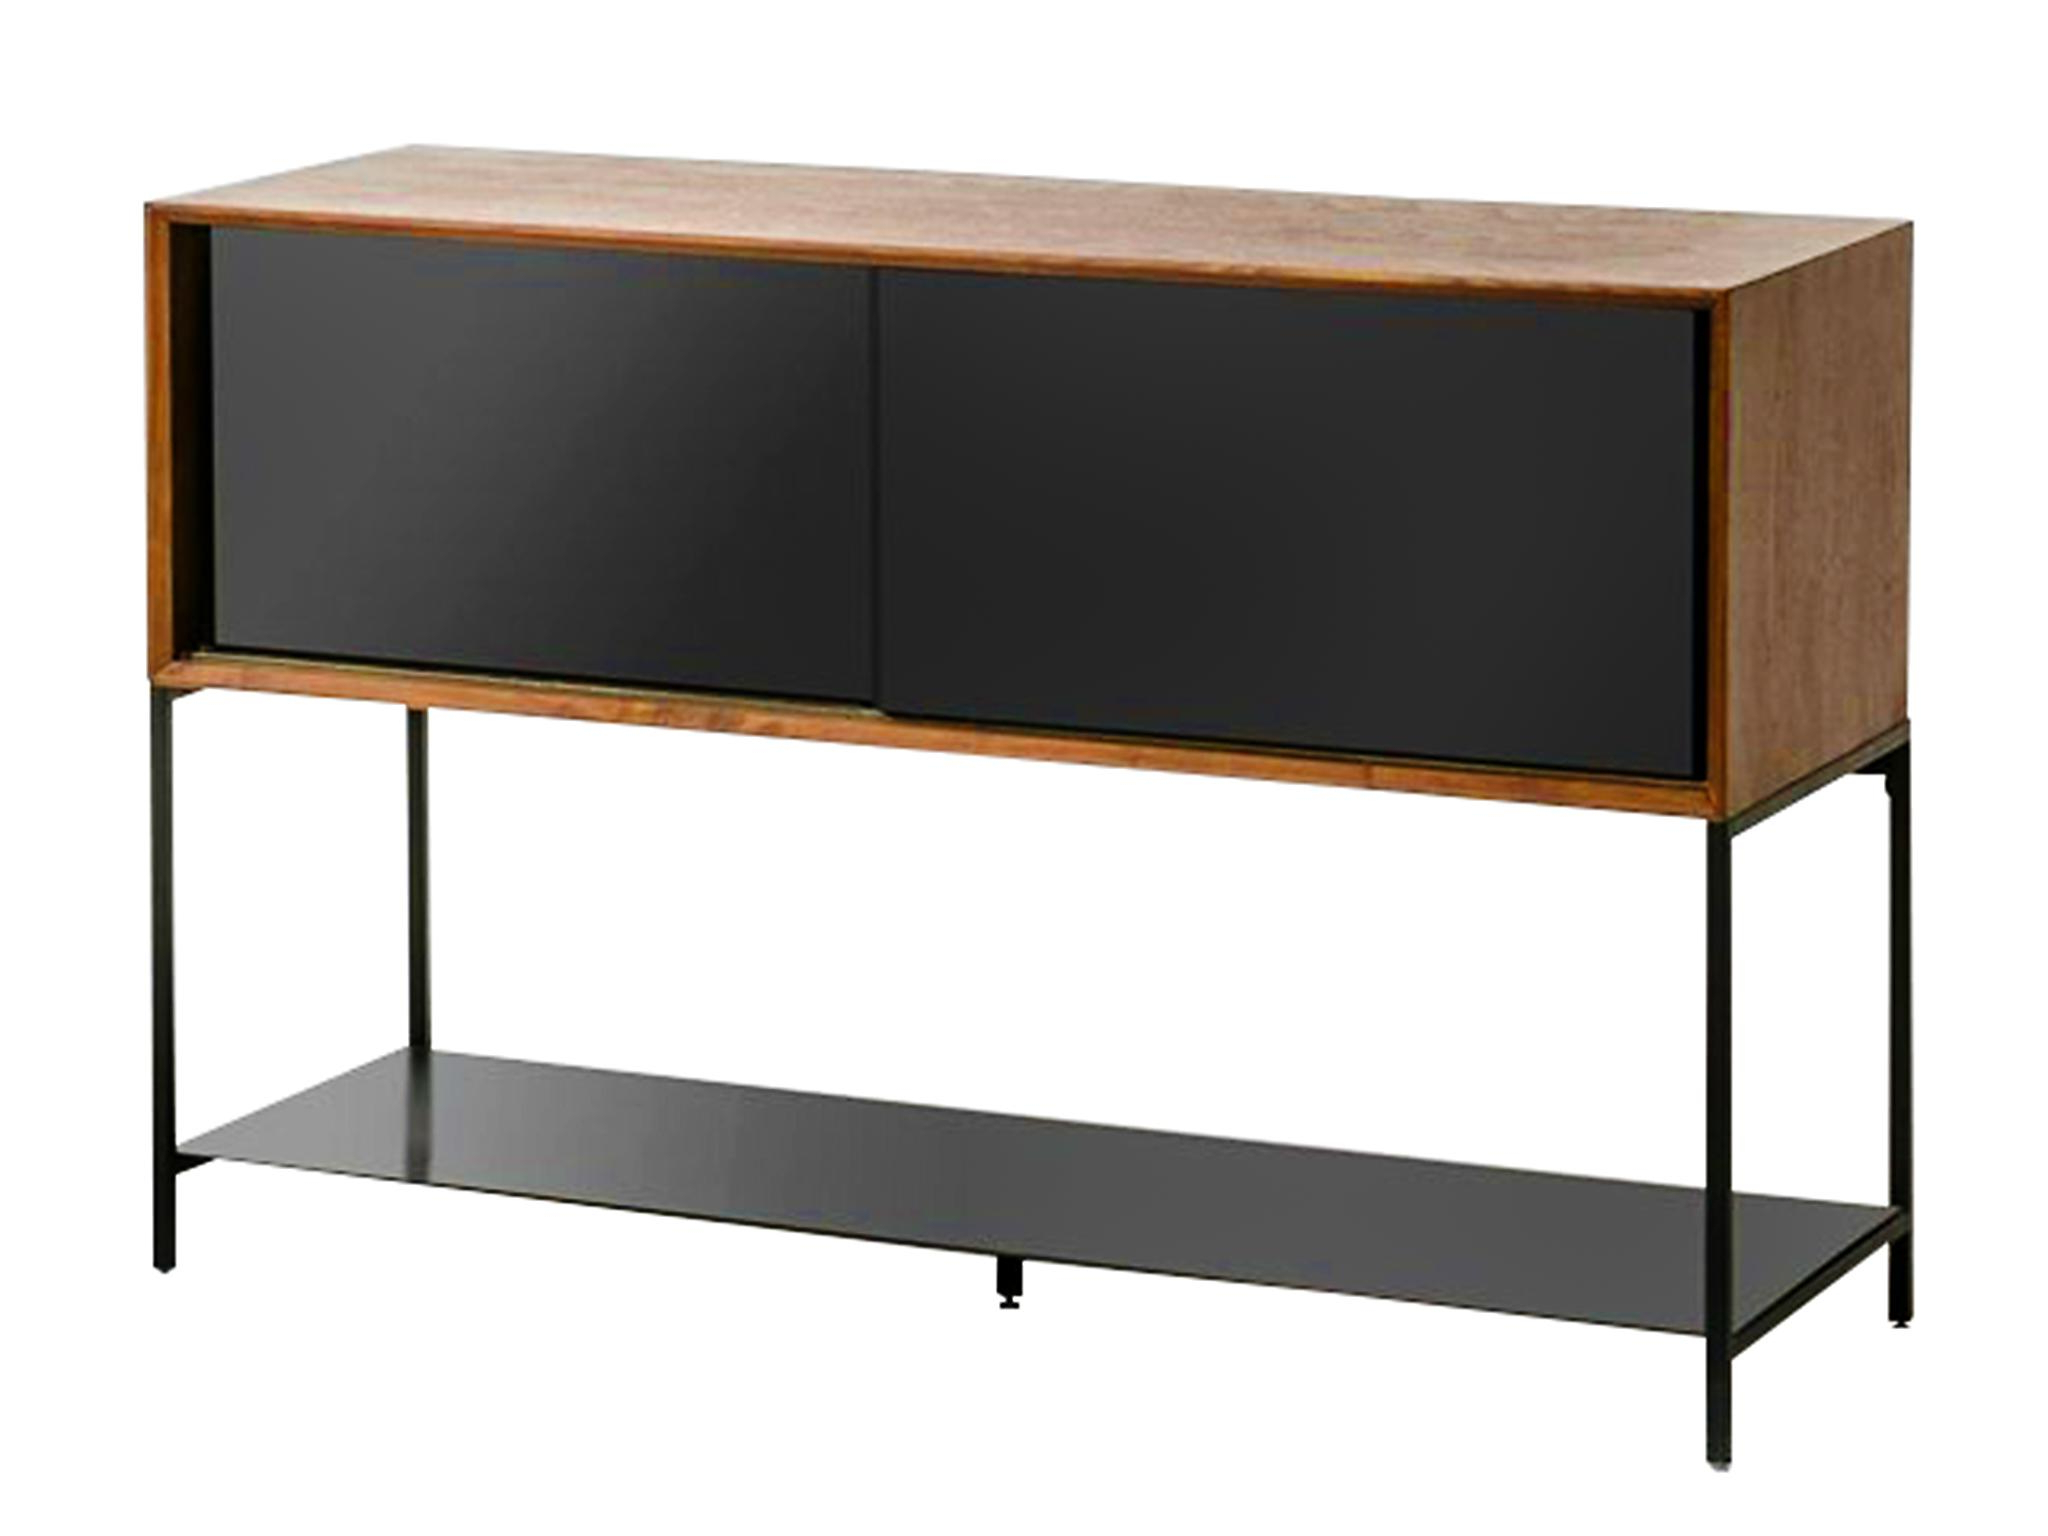 Fashionable Dark Smoked Oak With White Marble Top Sideboards For 10 Best Sideboards (View 16 of 20)